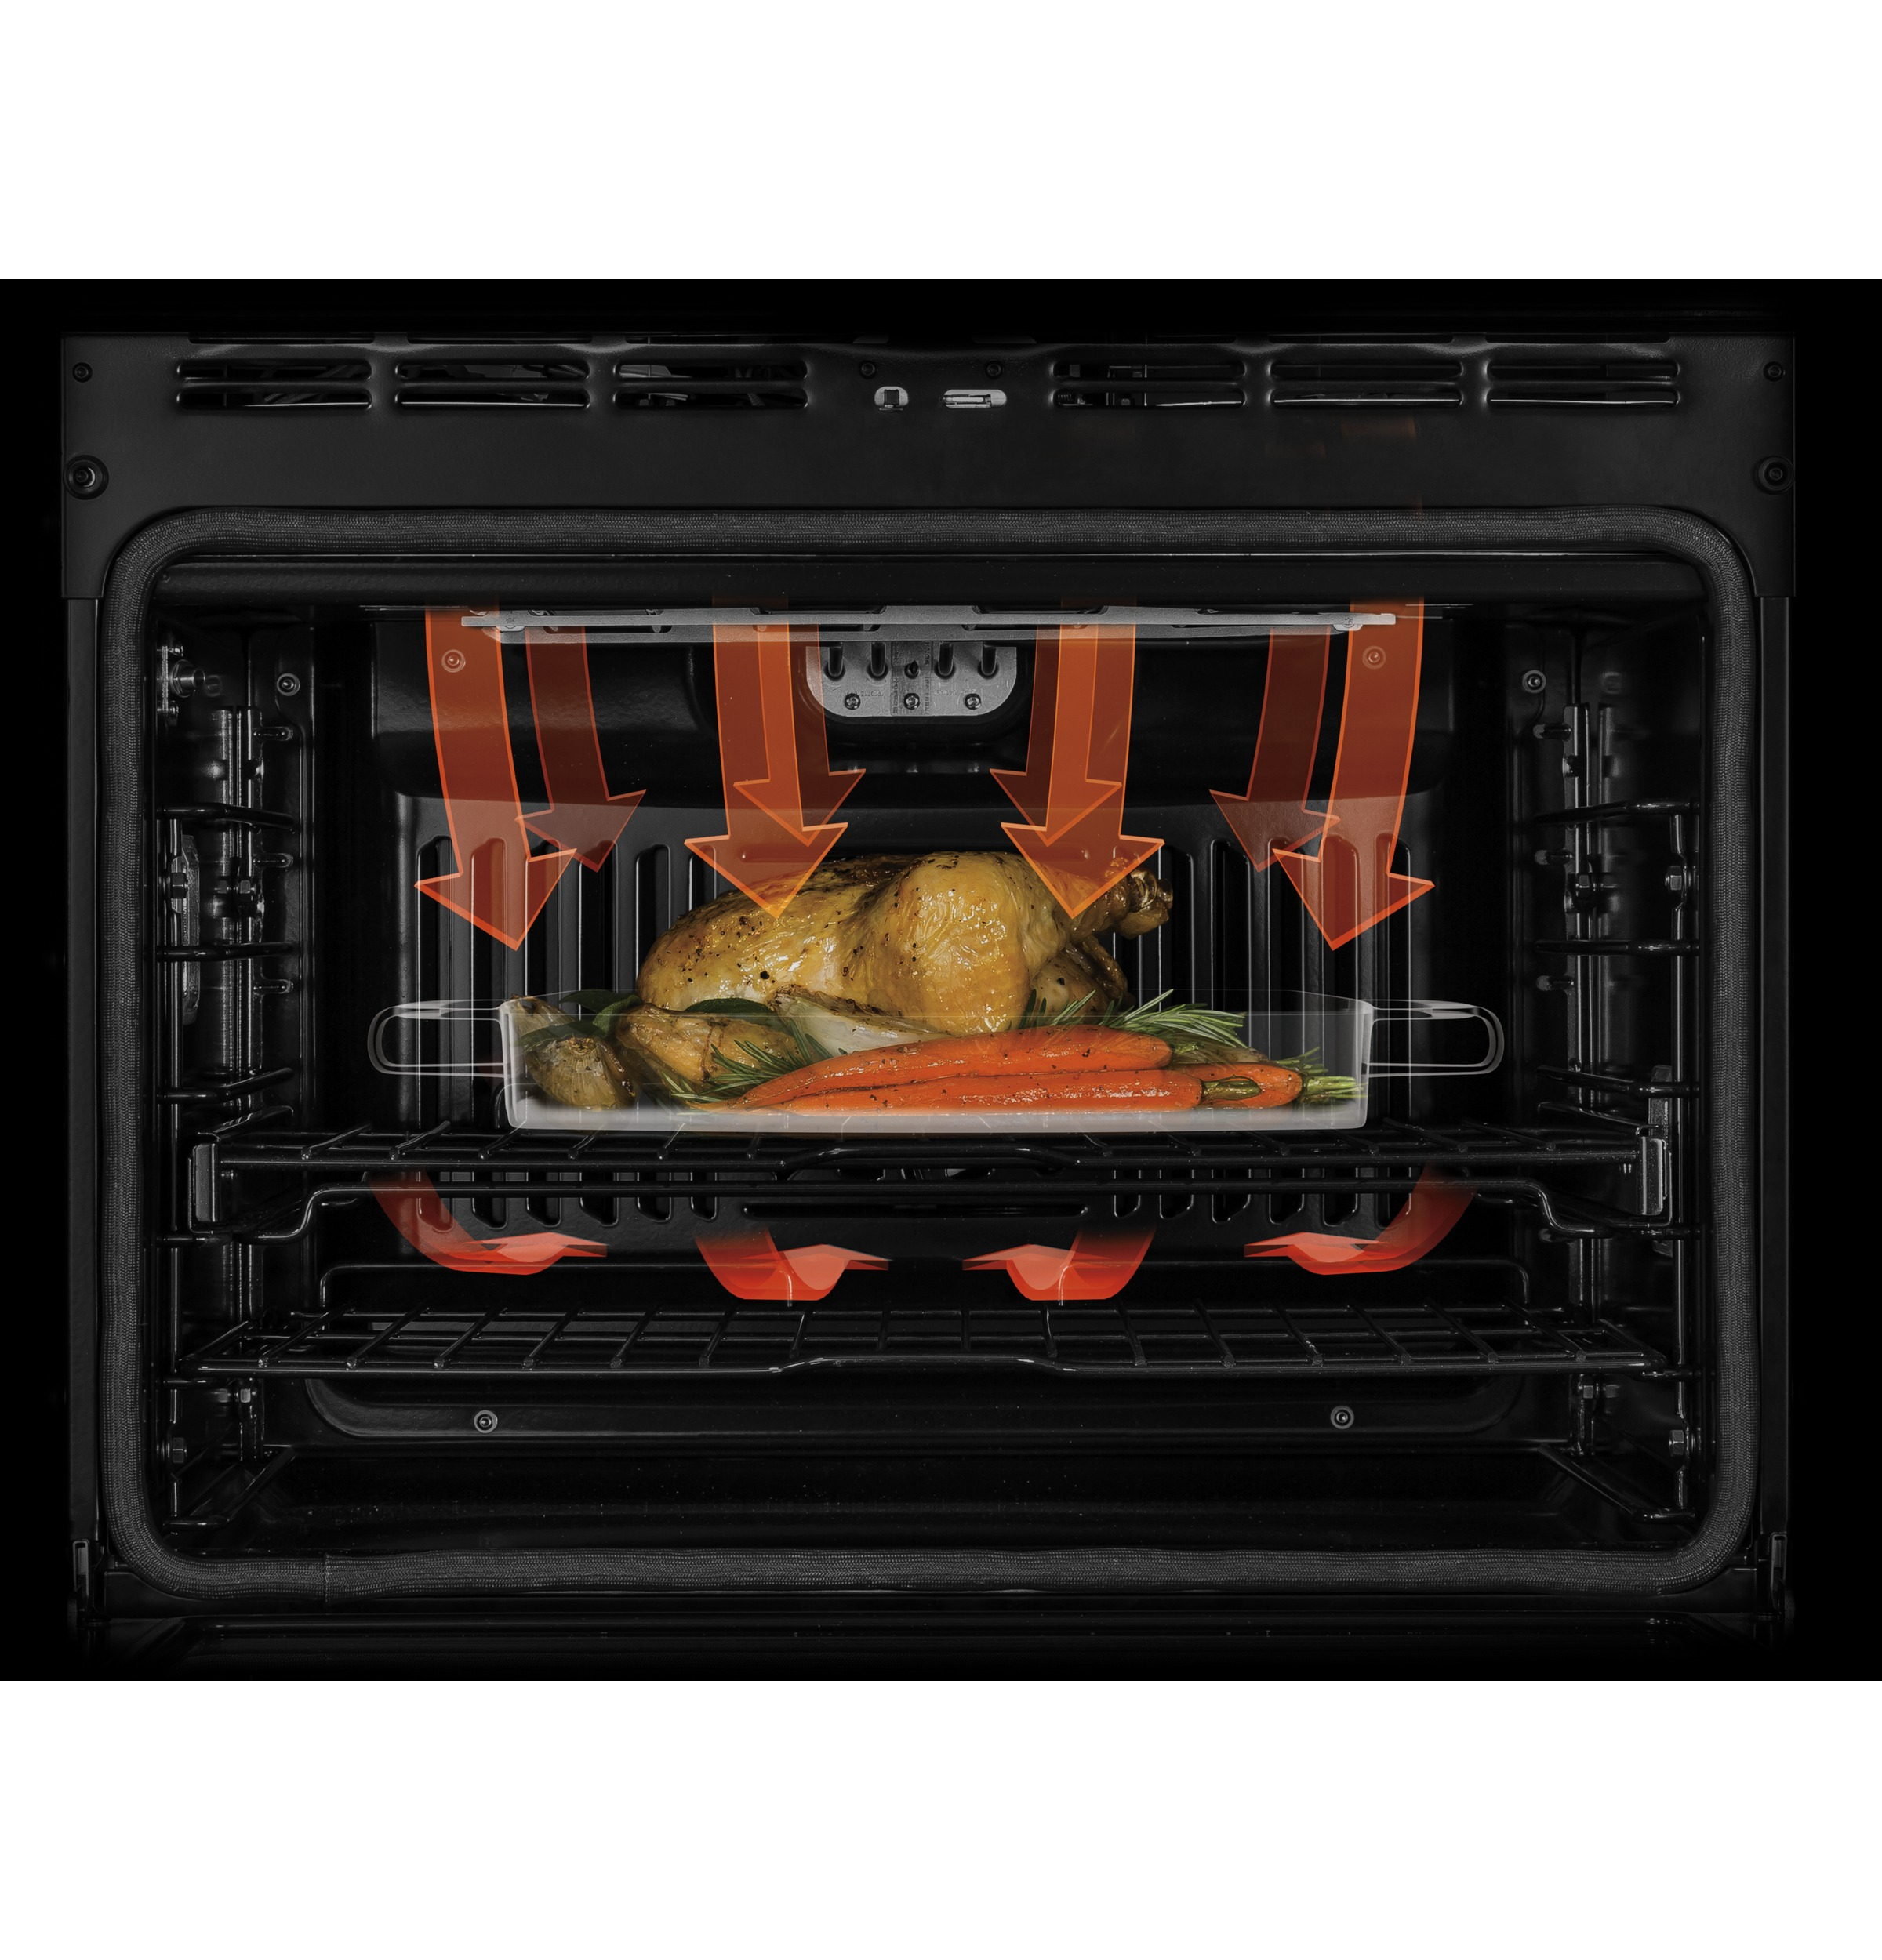 kenmore wall d stainless oven convection black double prod off w self electric jsp product details clean toaster cleaning